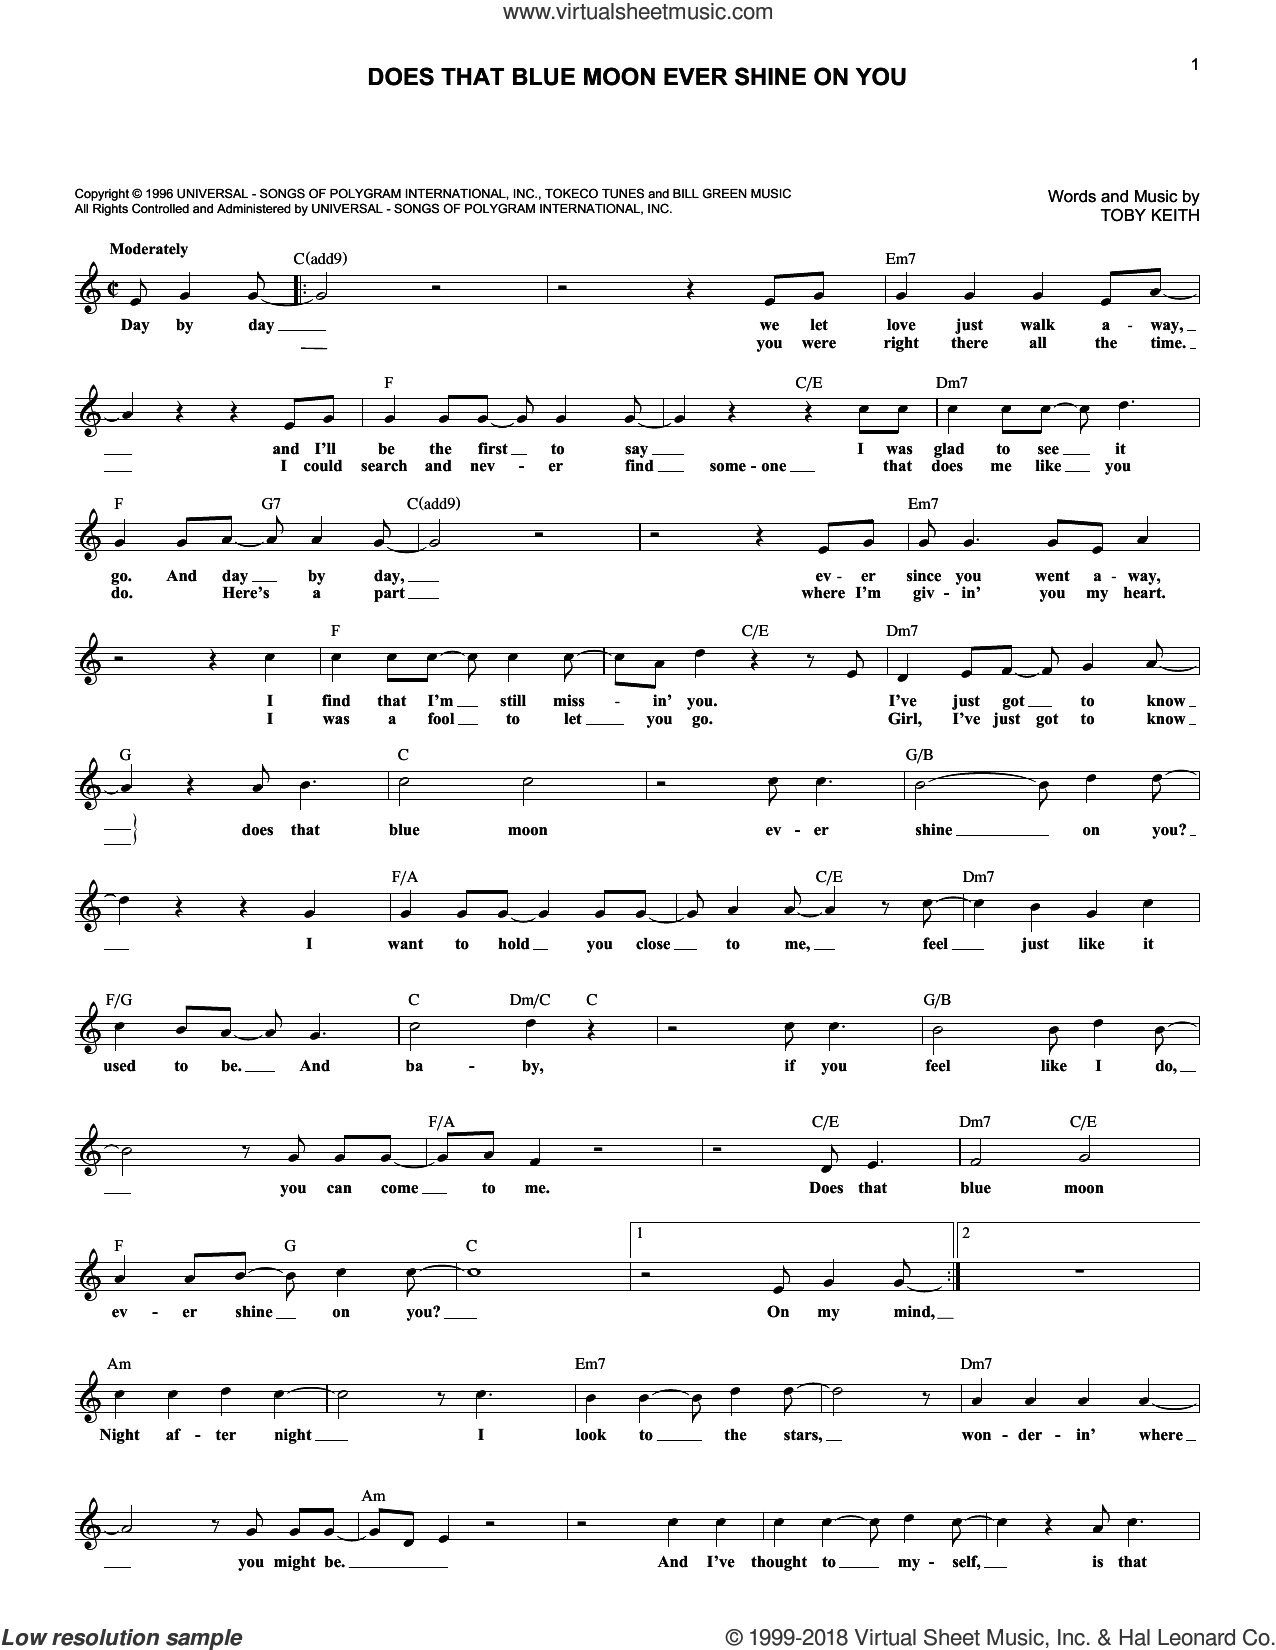 Does That Blue Moon Ever Shine On You sheet music for voice and other instruments (fake book) by Toby Keith, intermediate skill level